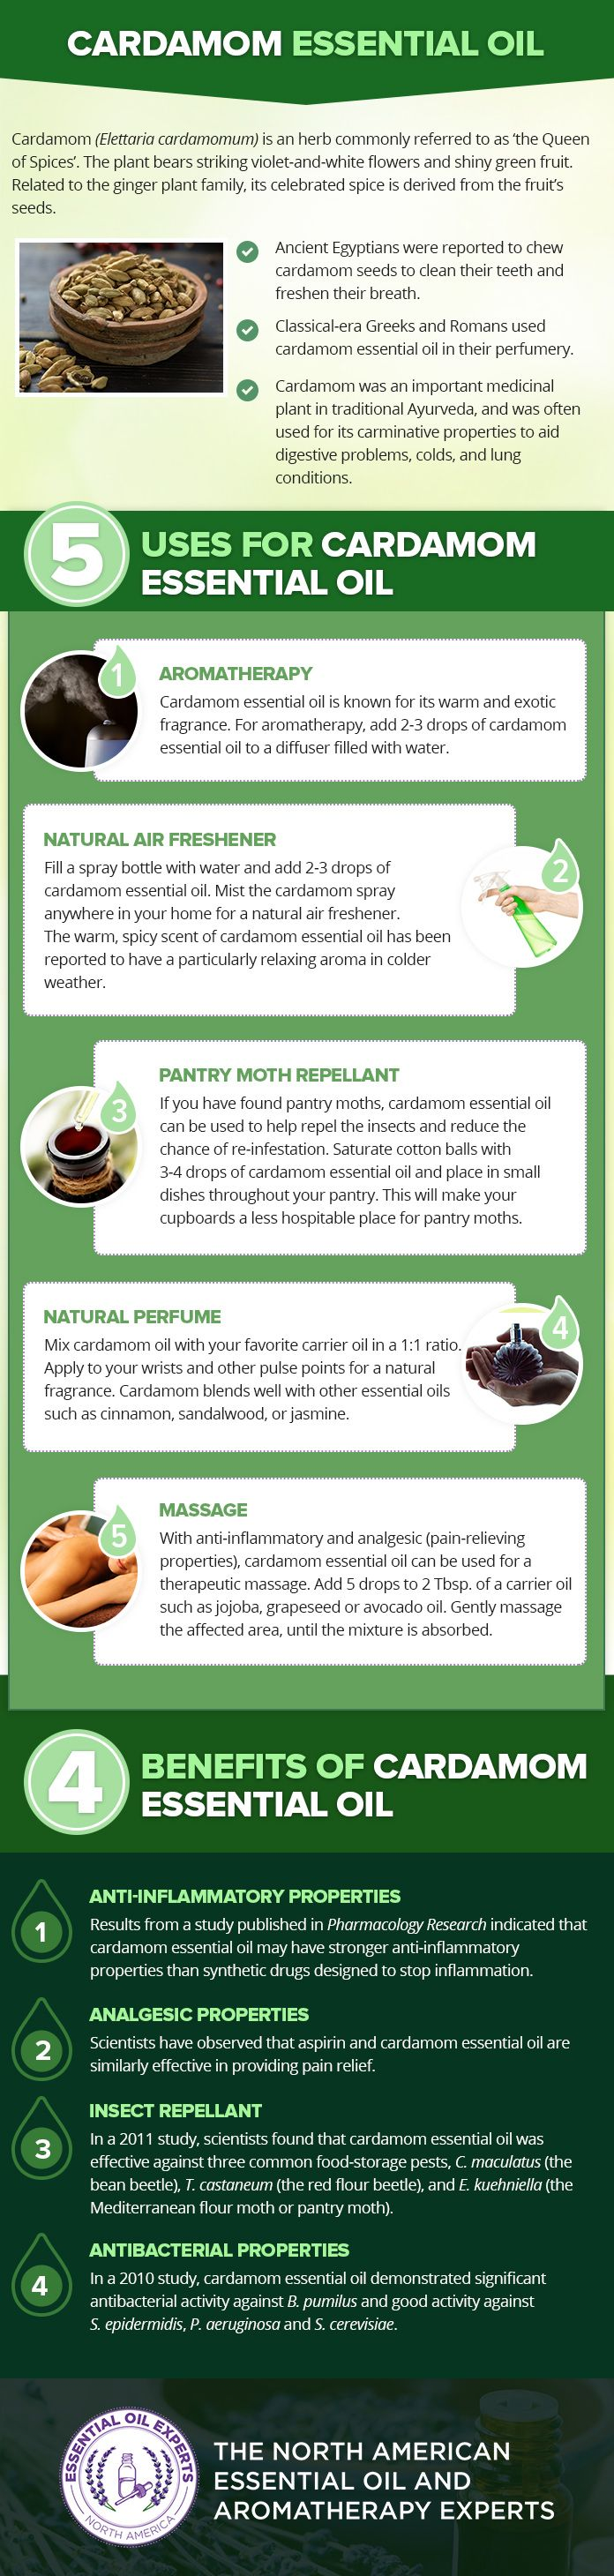 Cardamom Essential Oil Uses & Benefits